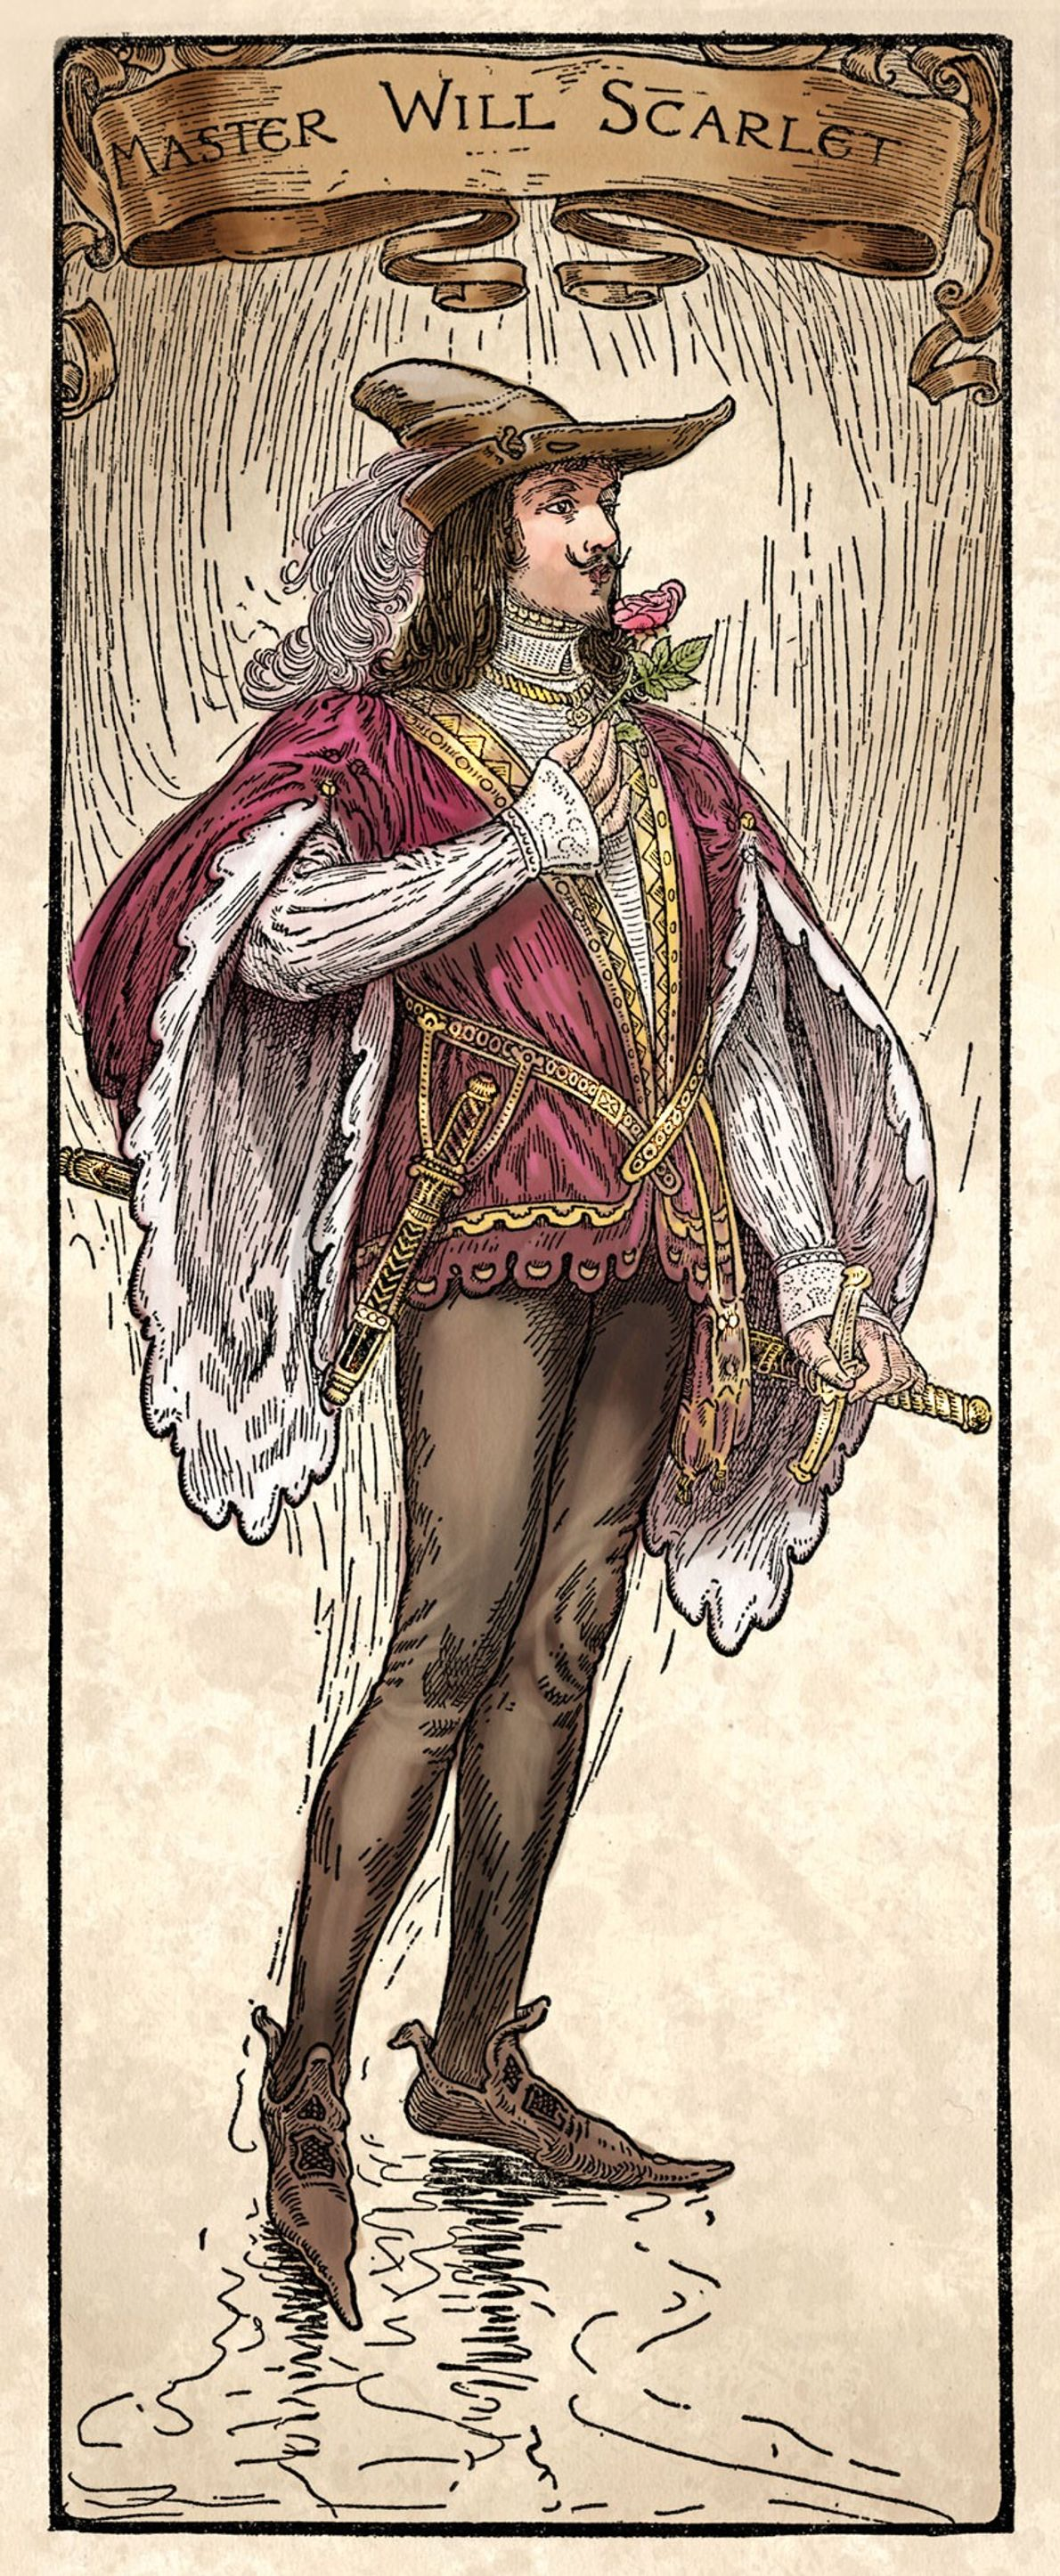 Also known by the nickname Scathelock or Scadlock, Will Scarlet figures in the oldest ballads about ...